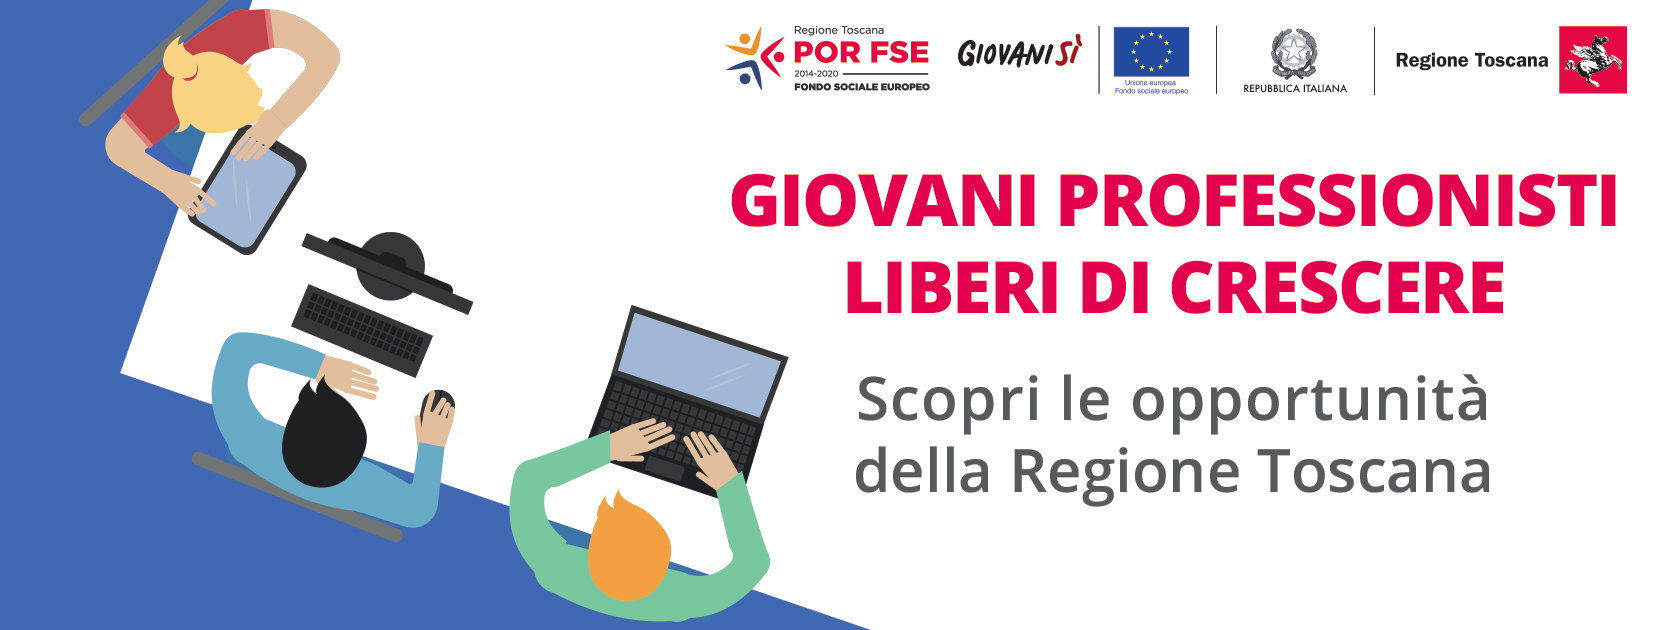 Voucher formativi individuali per professionisti under 40